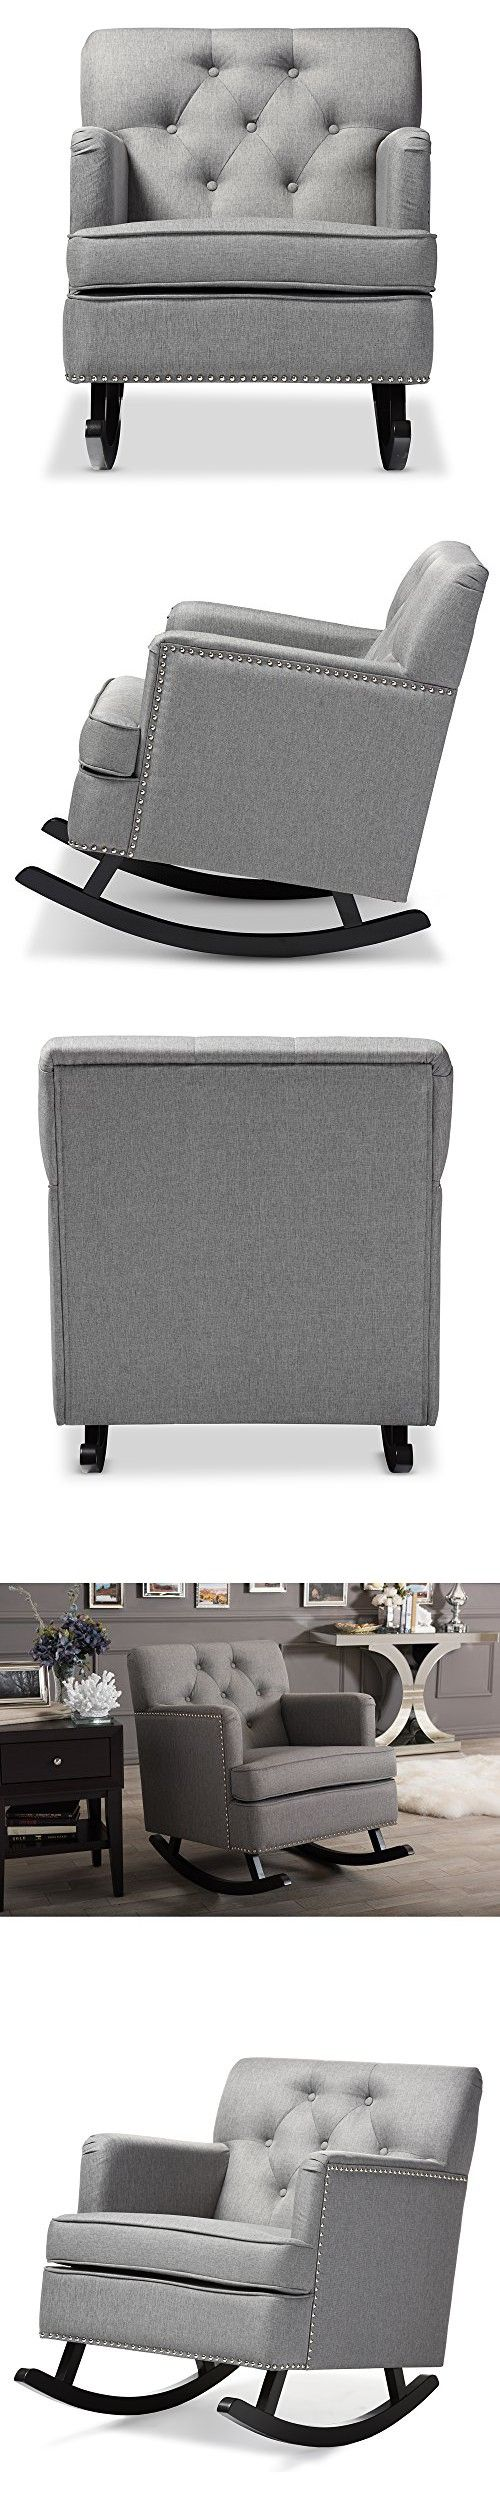 Baxton studio brighton button tufted upholstered modern bedroom bench - Baxton Studio Bethany Modern Contemporary Fabric Upholstered Button Tufted Rocking Chair